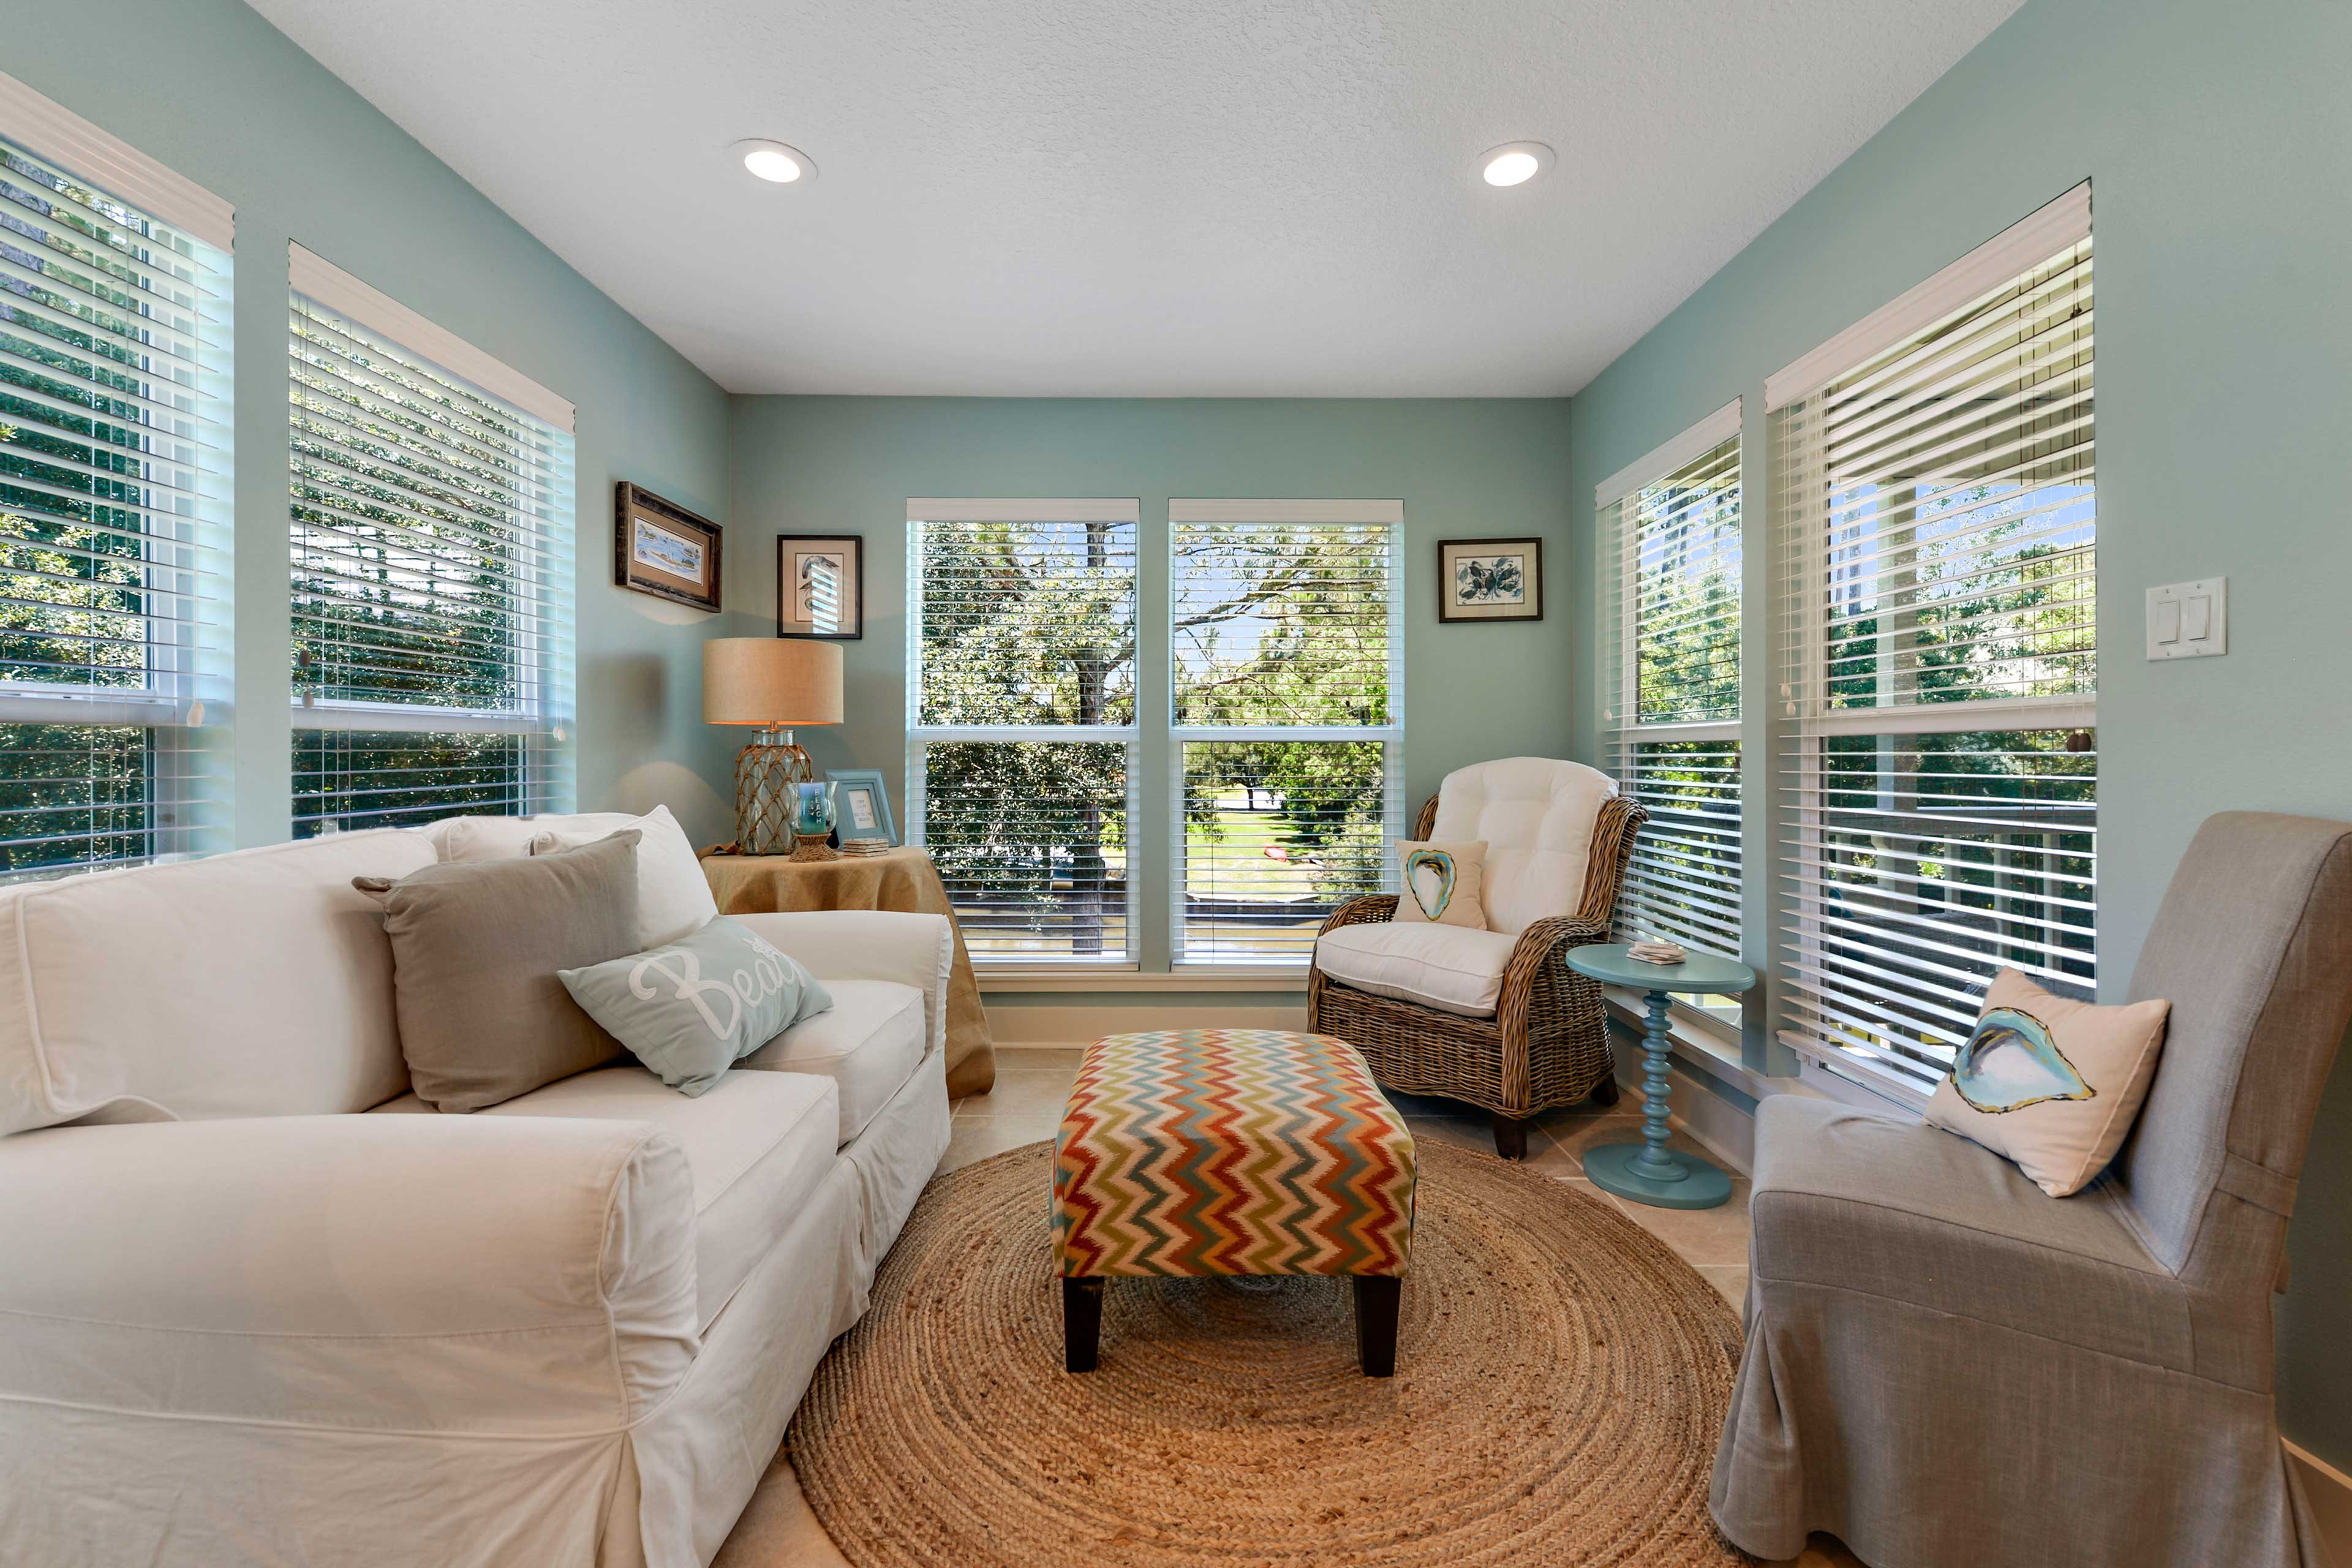 There are multiple places to sit and relax throughout the home.